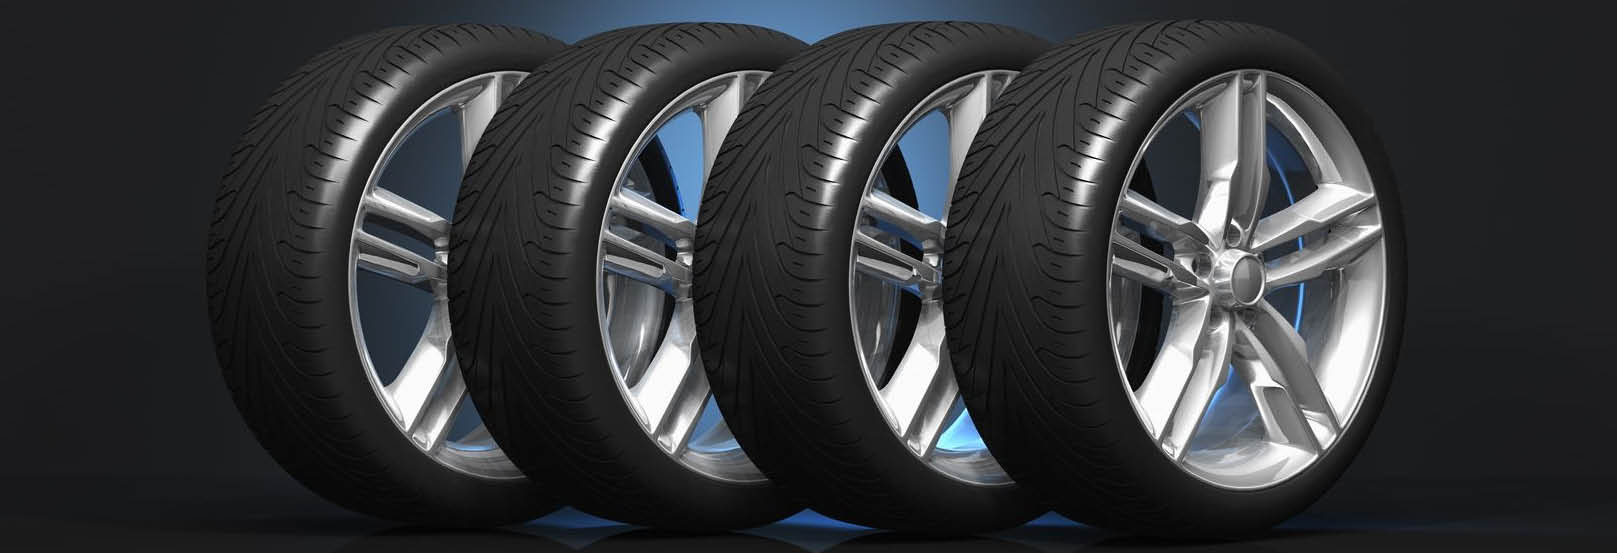 melvin's tires and auto tire picture